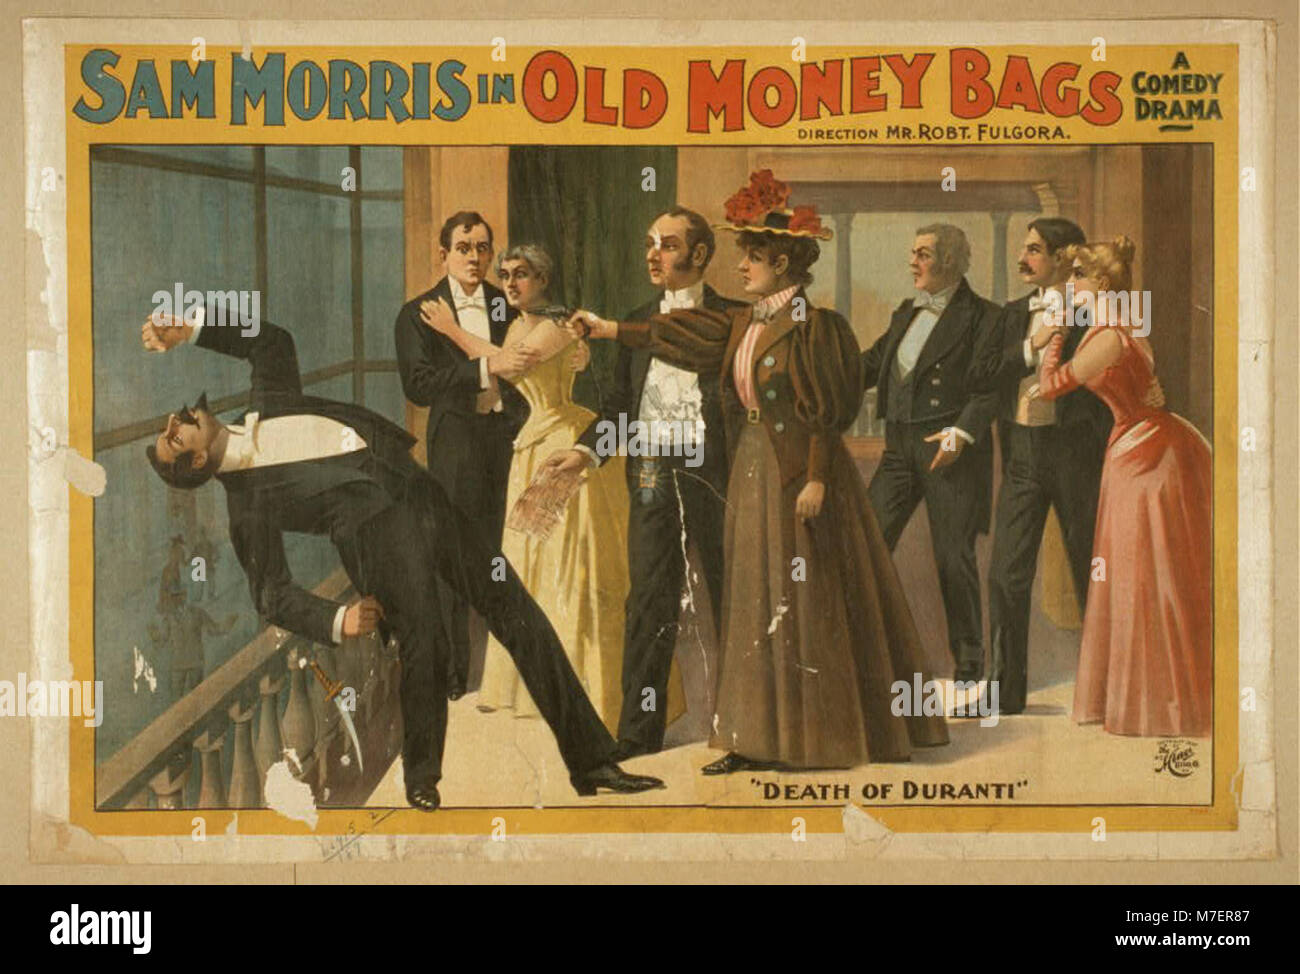 Image of: Hardy Sam Morris In Old Money Bags Comedy Drama Lccn2014636247 Face2face Africa Sam Morris In Old Money Bags Comedy Drama Lccn2014636247 Stock